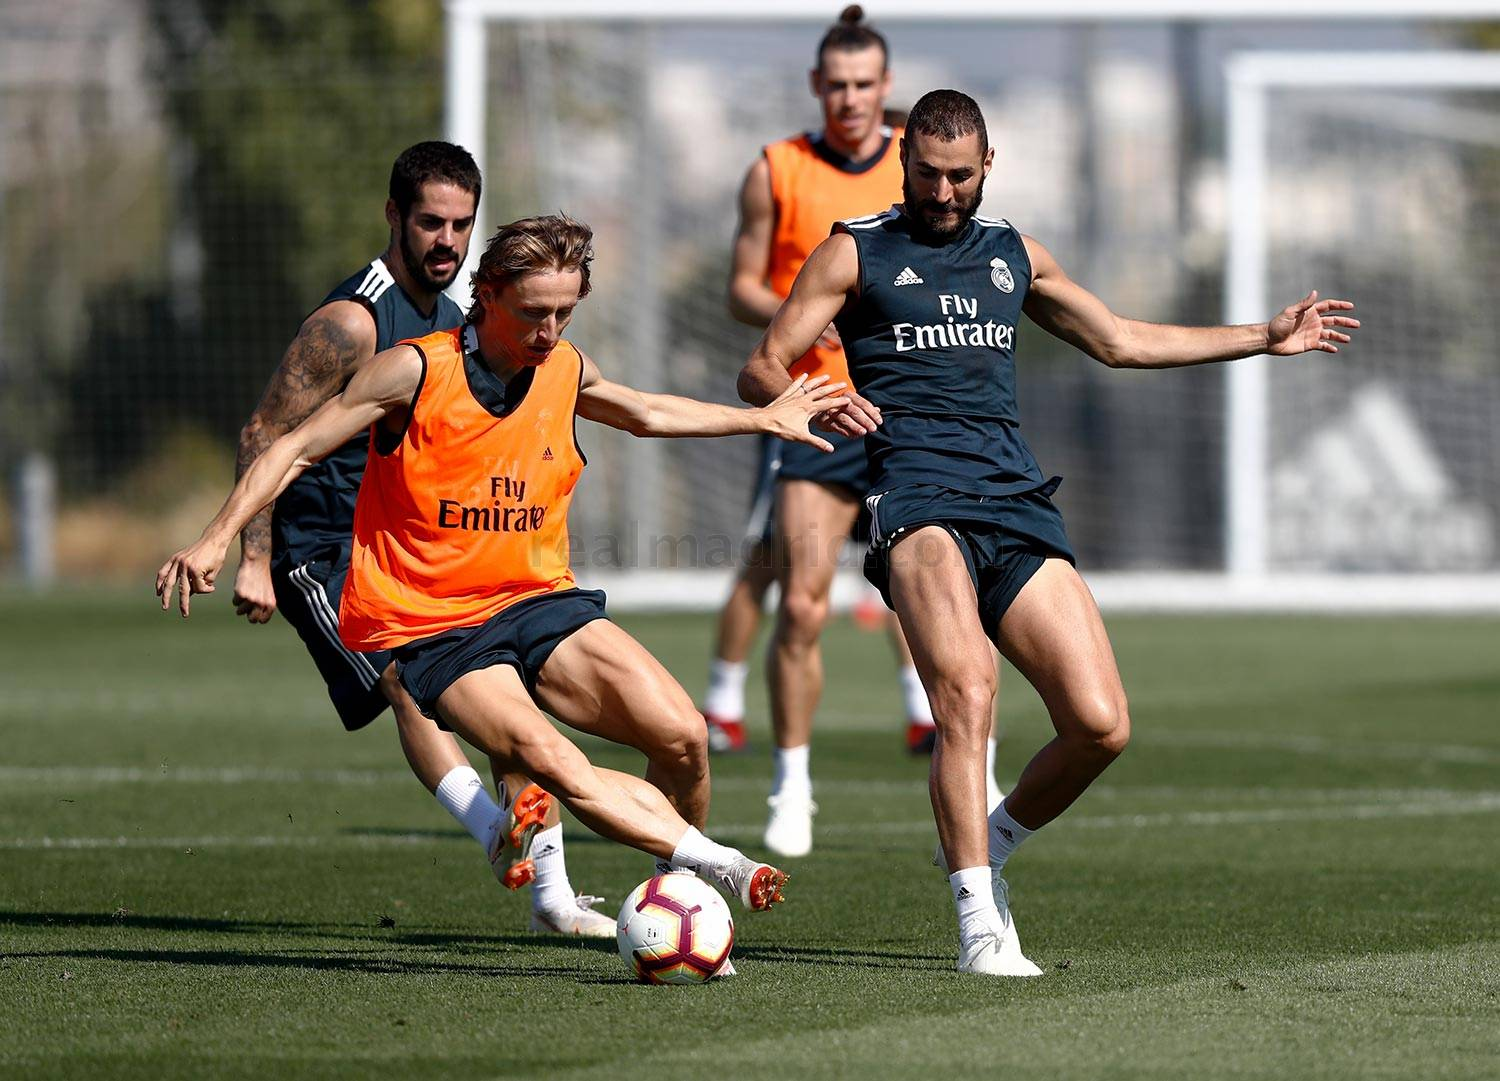 Real Madrid - Entrenamiento del Real Madrid - 13-09-2018